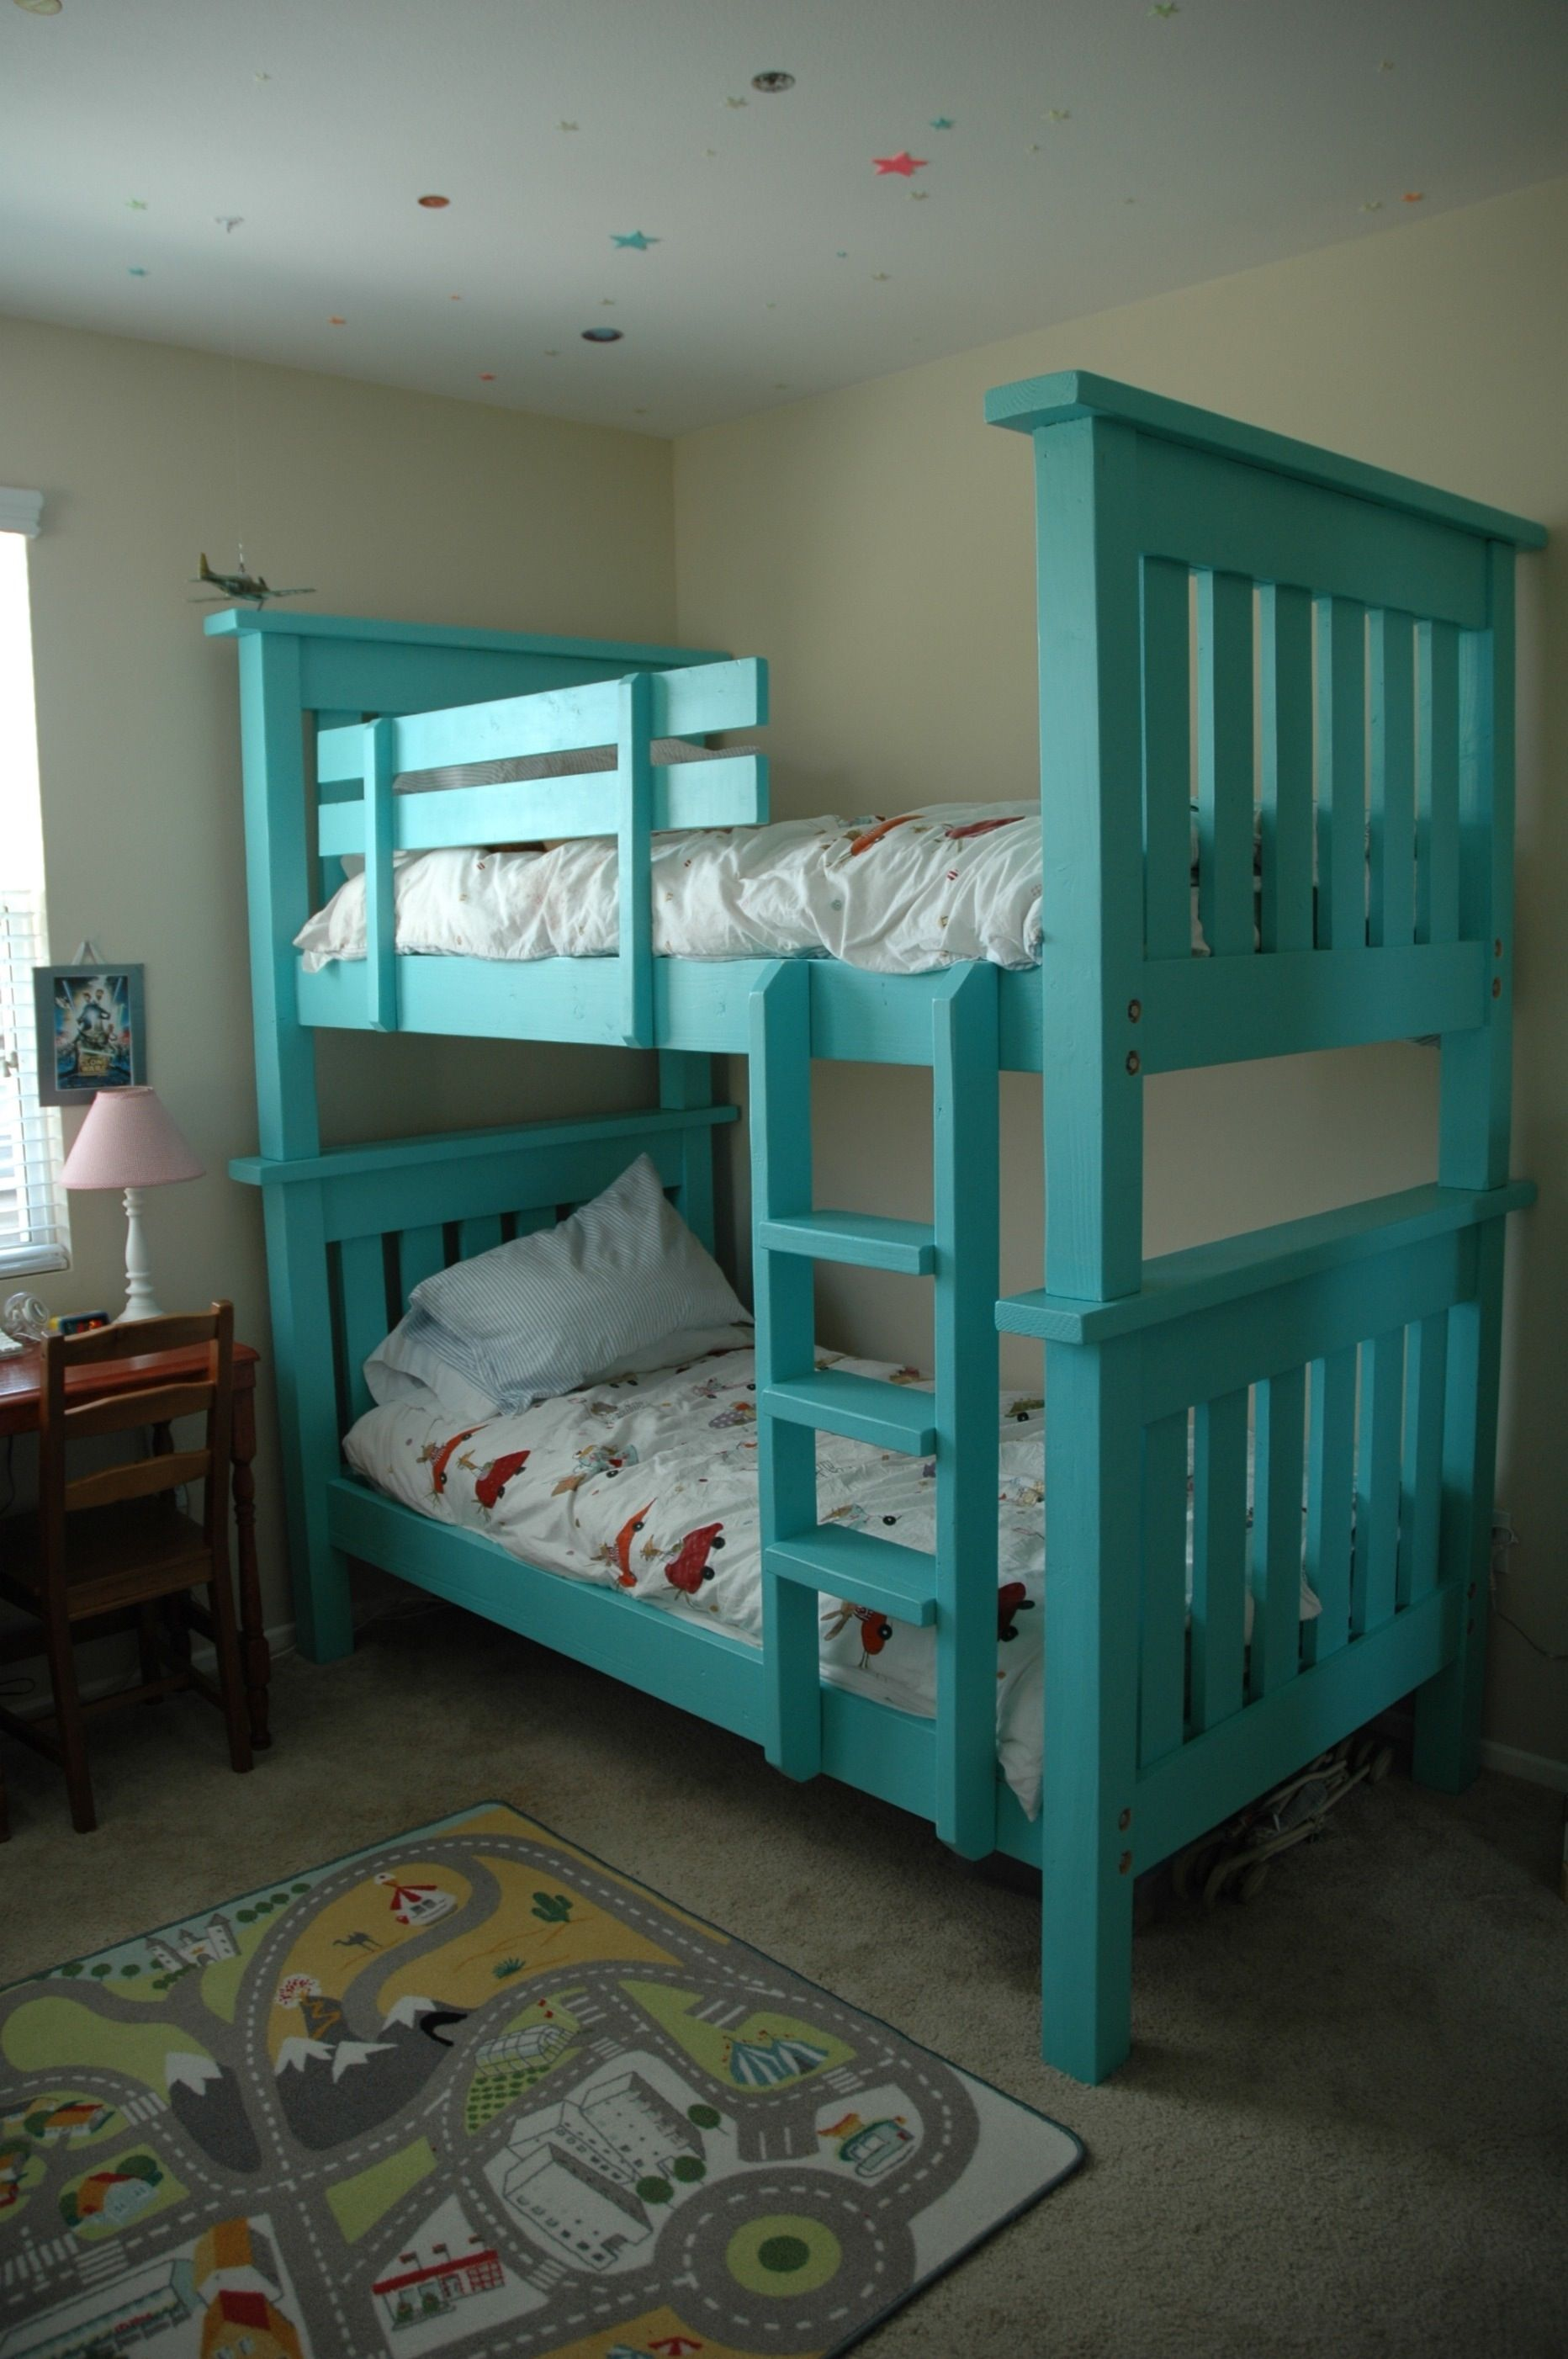 Bunk Bed from Simple Bed, modified Do It Yourself Home